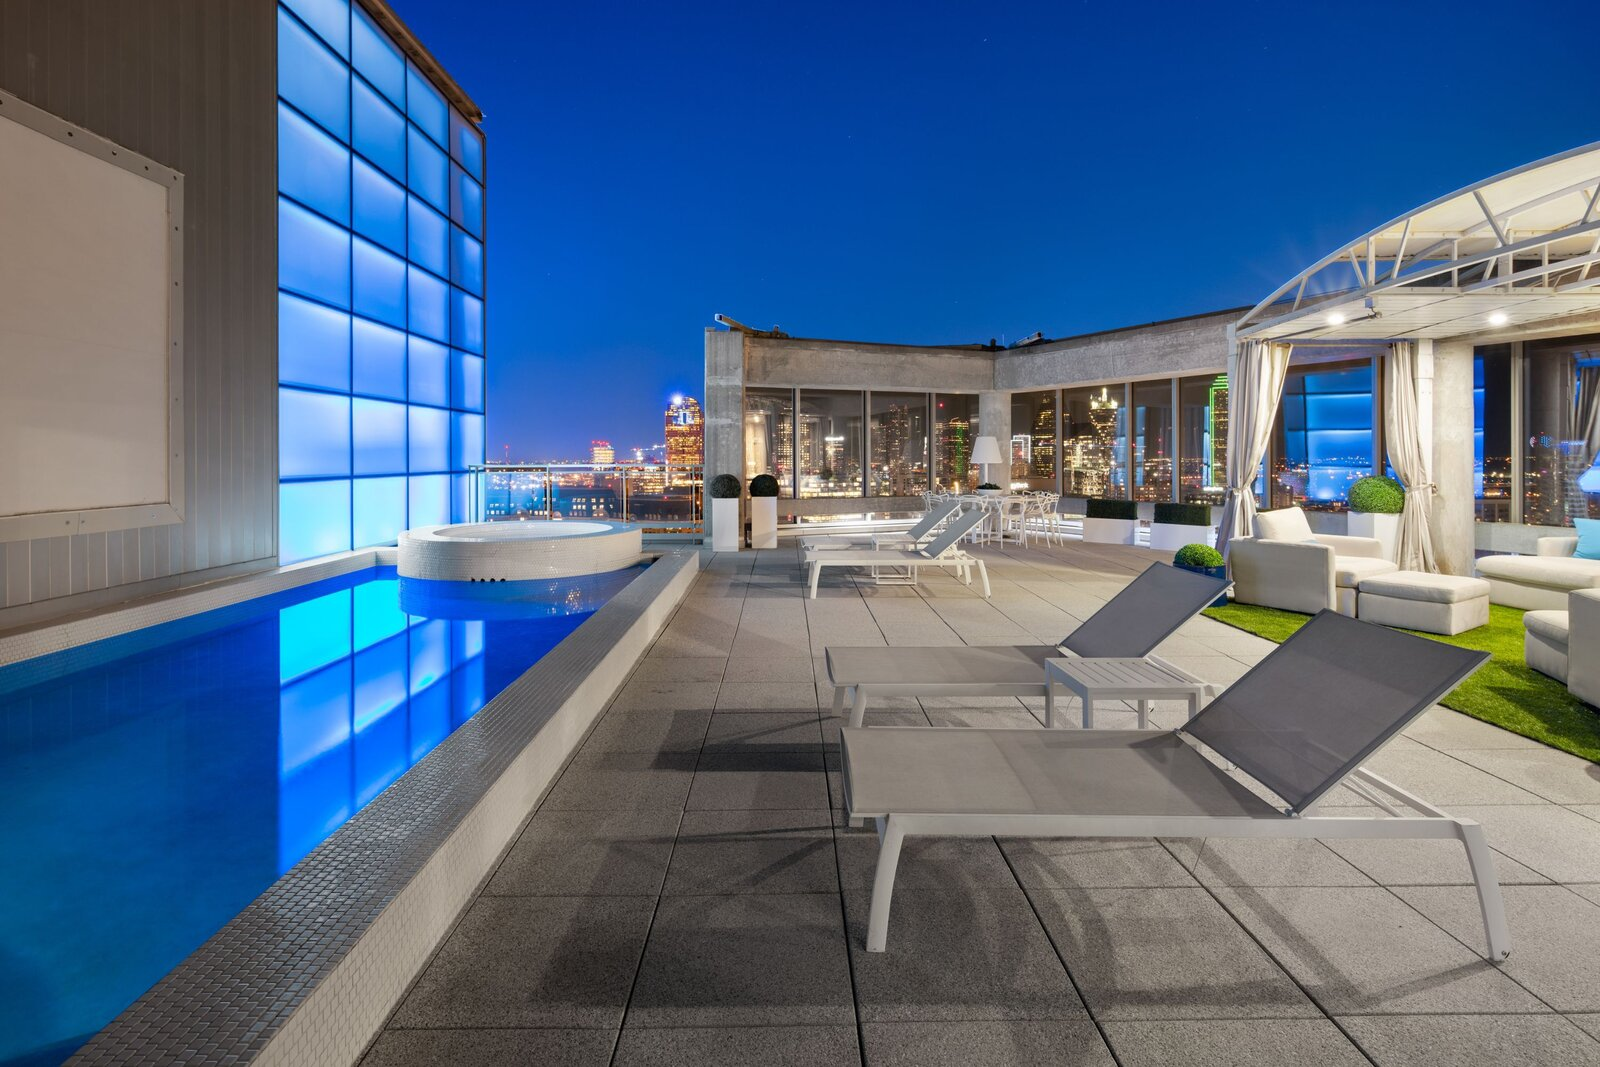 Photo 9 of 10 in An Indoor/Outdoor Penthouse With Downtown Dallas Views Wants $5.7M